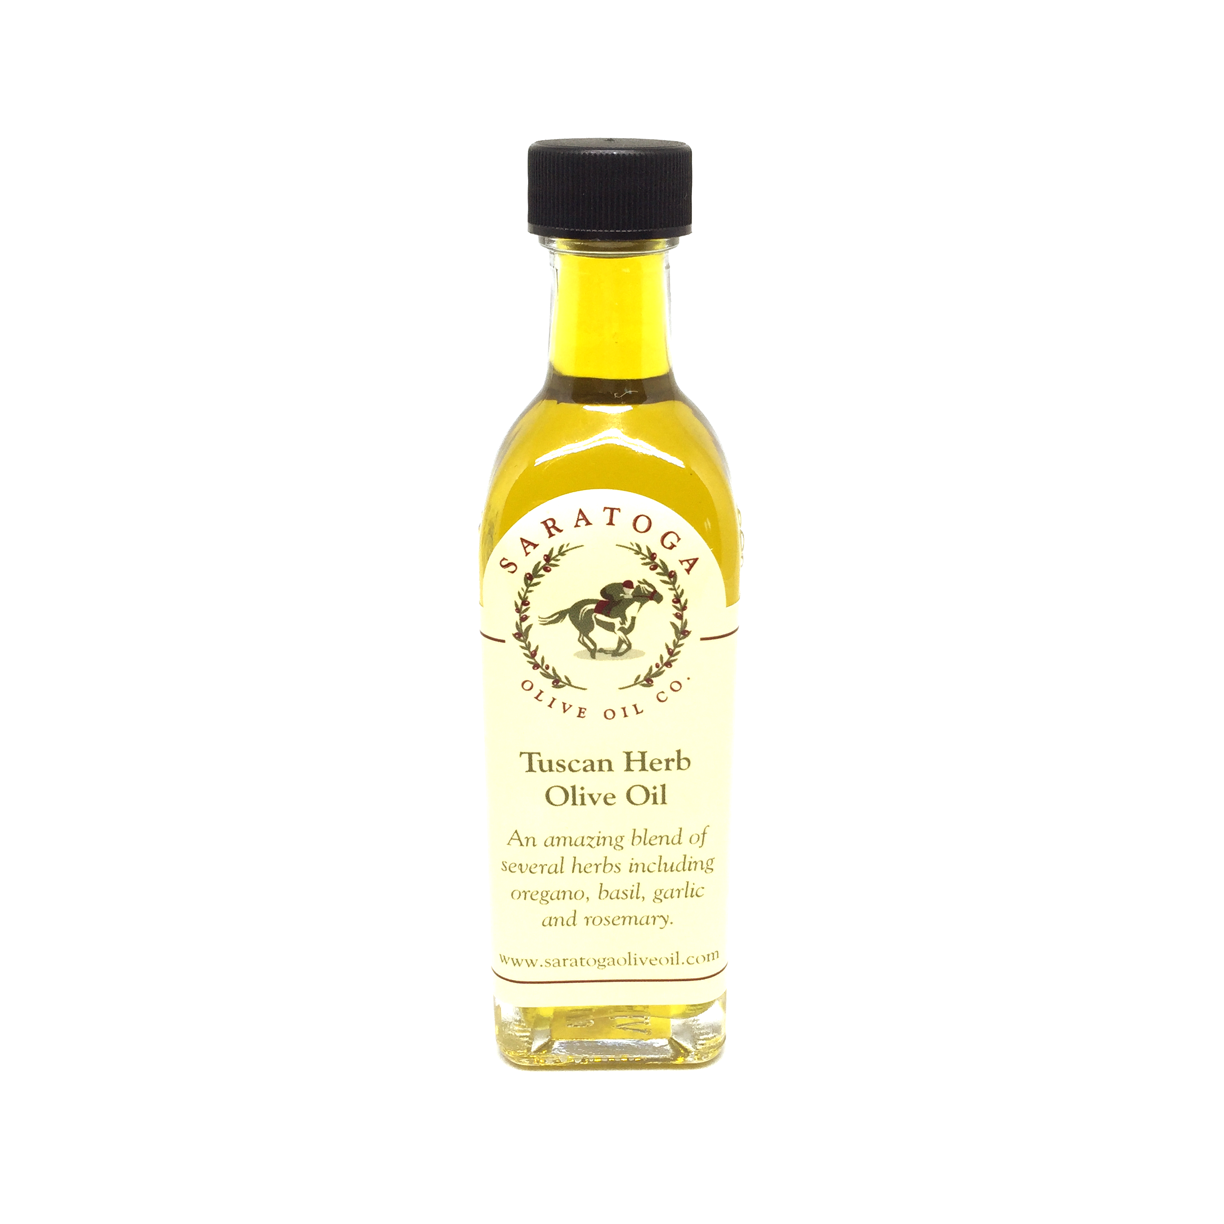 From the award winning Saratoga Olive Oil Co. comes an amazing blend of several herbs including oregano, basil, garlic, and rosemary makes this olive oil a superior bread dipping and seasoning oil. It makes an instant hit at tastings because of its superior balance of fresh herb flavors.